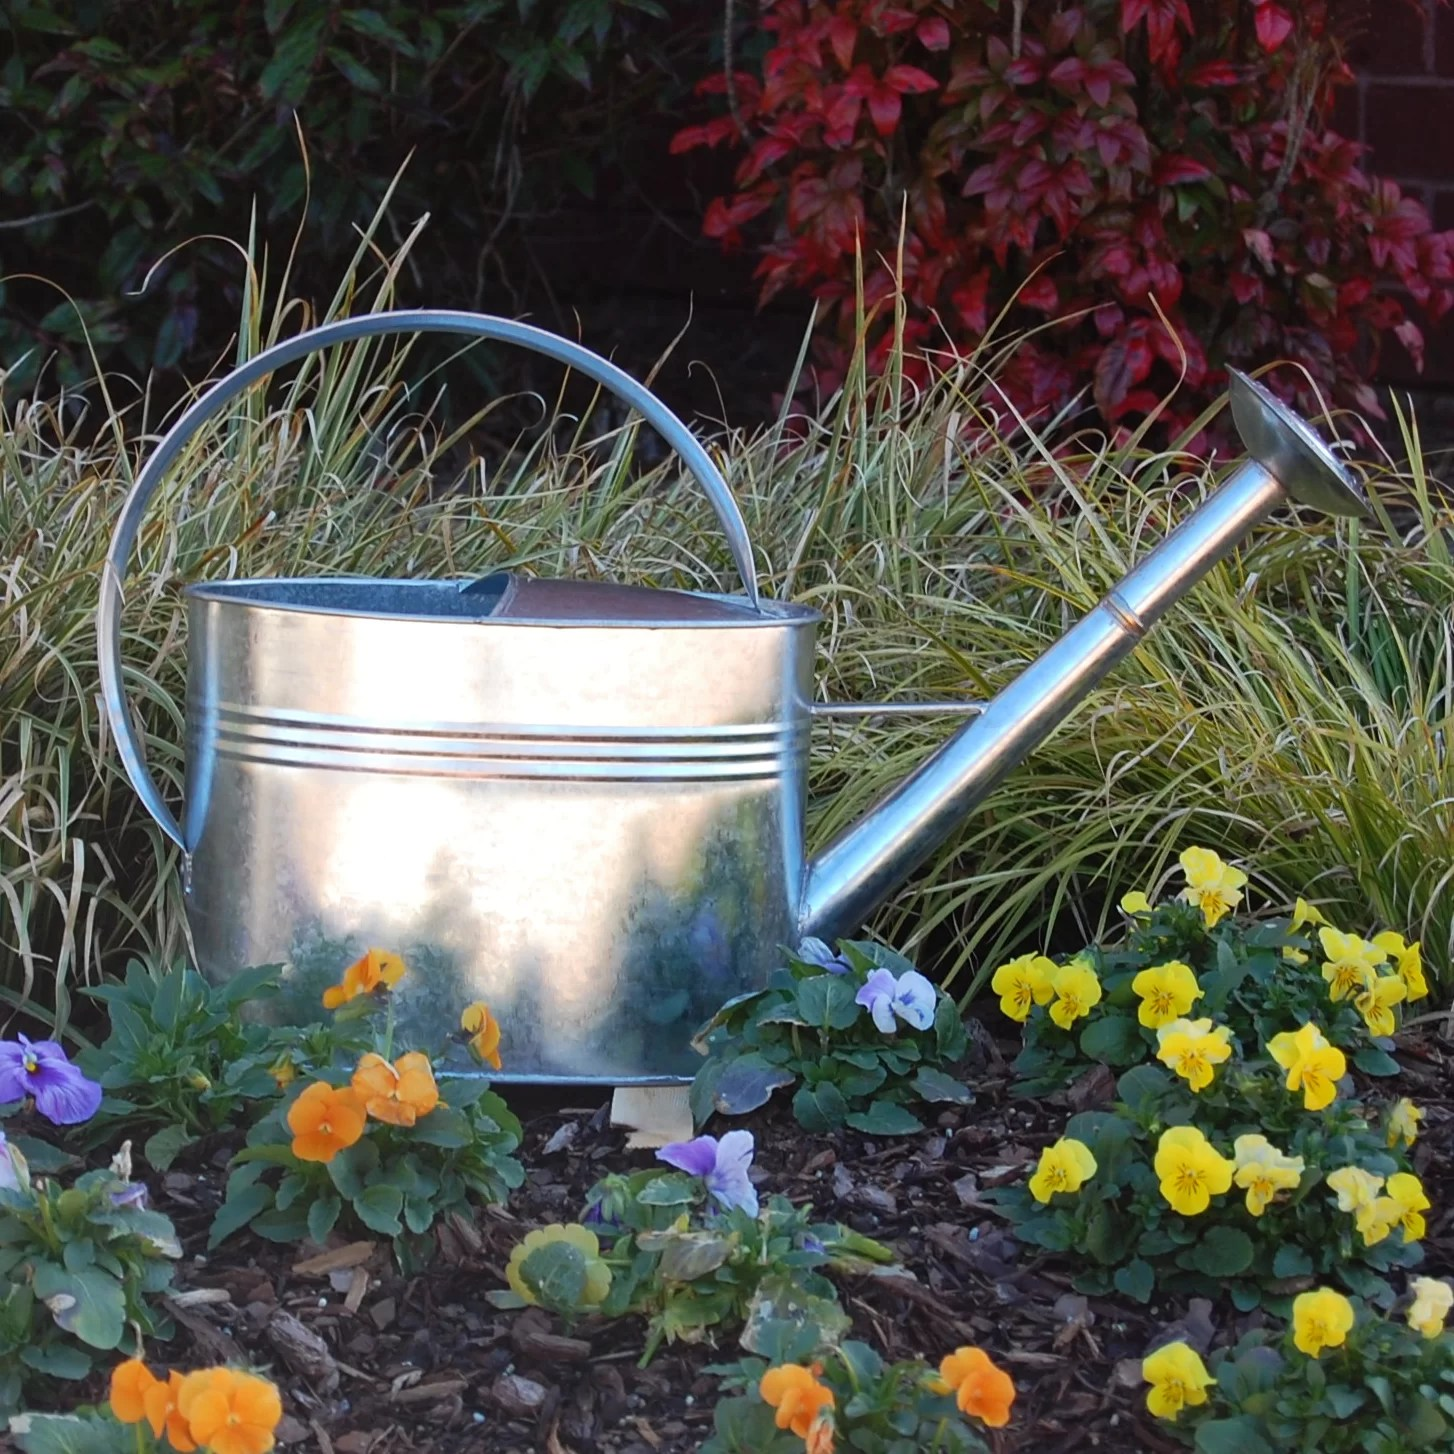 Watering Cans With Long Spouts Griffith Creek Designs 1 Gallon Galvanized Watering Can